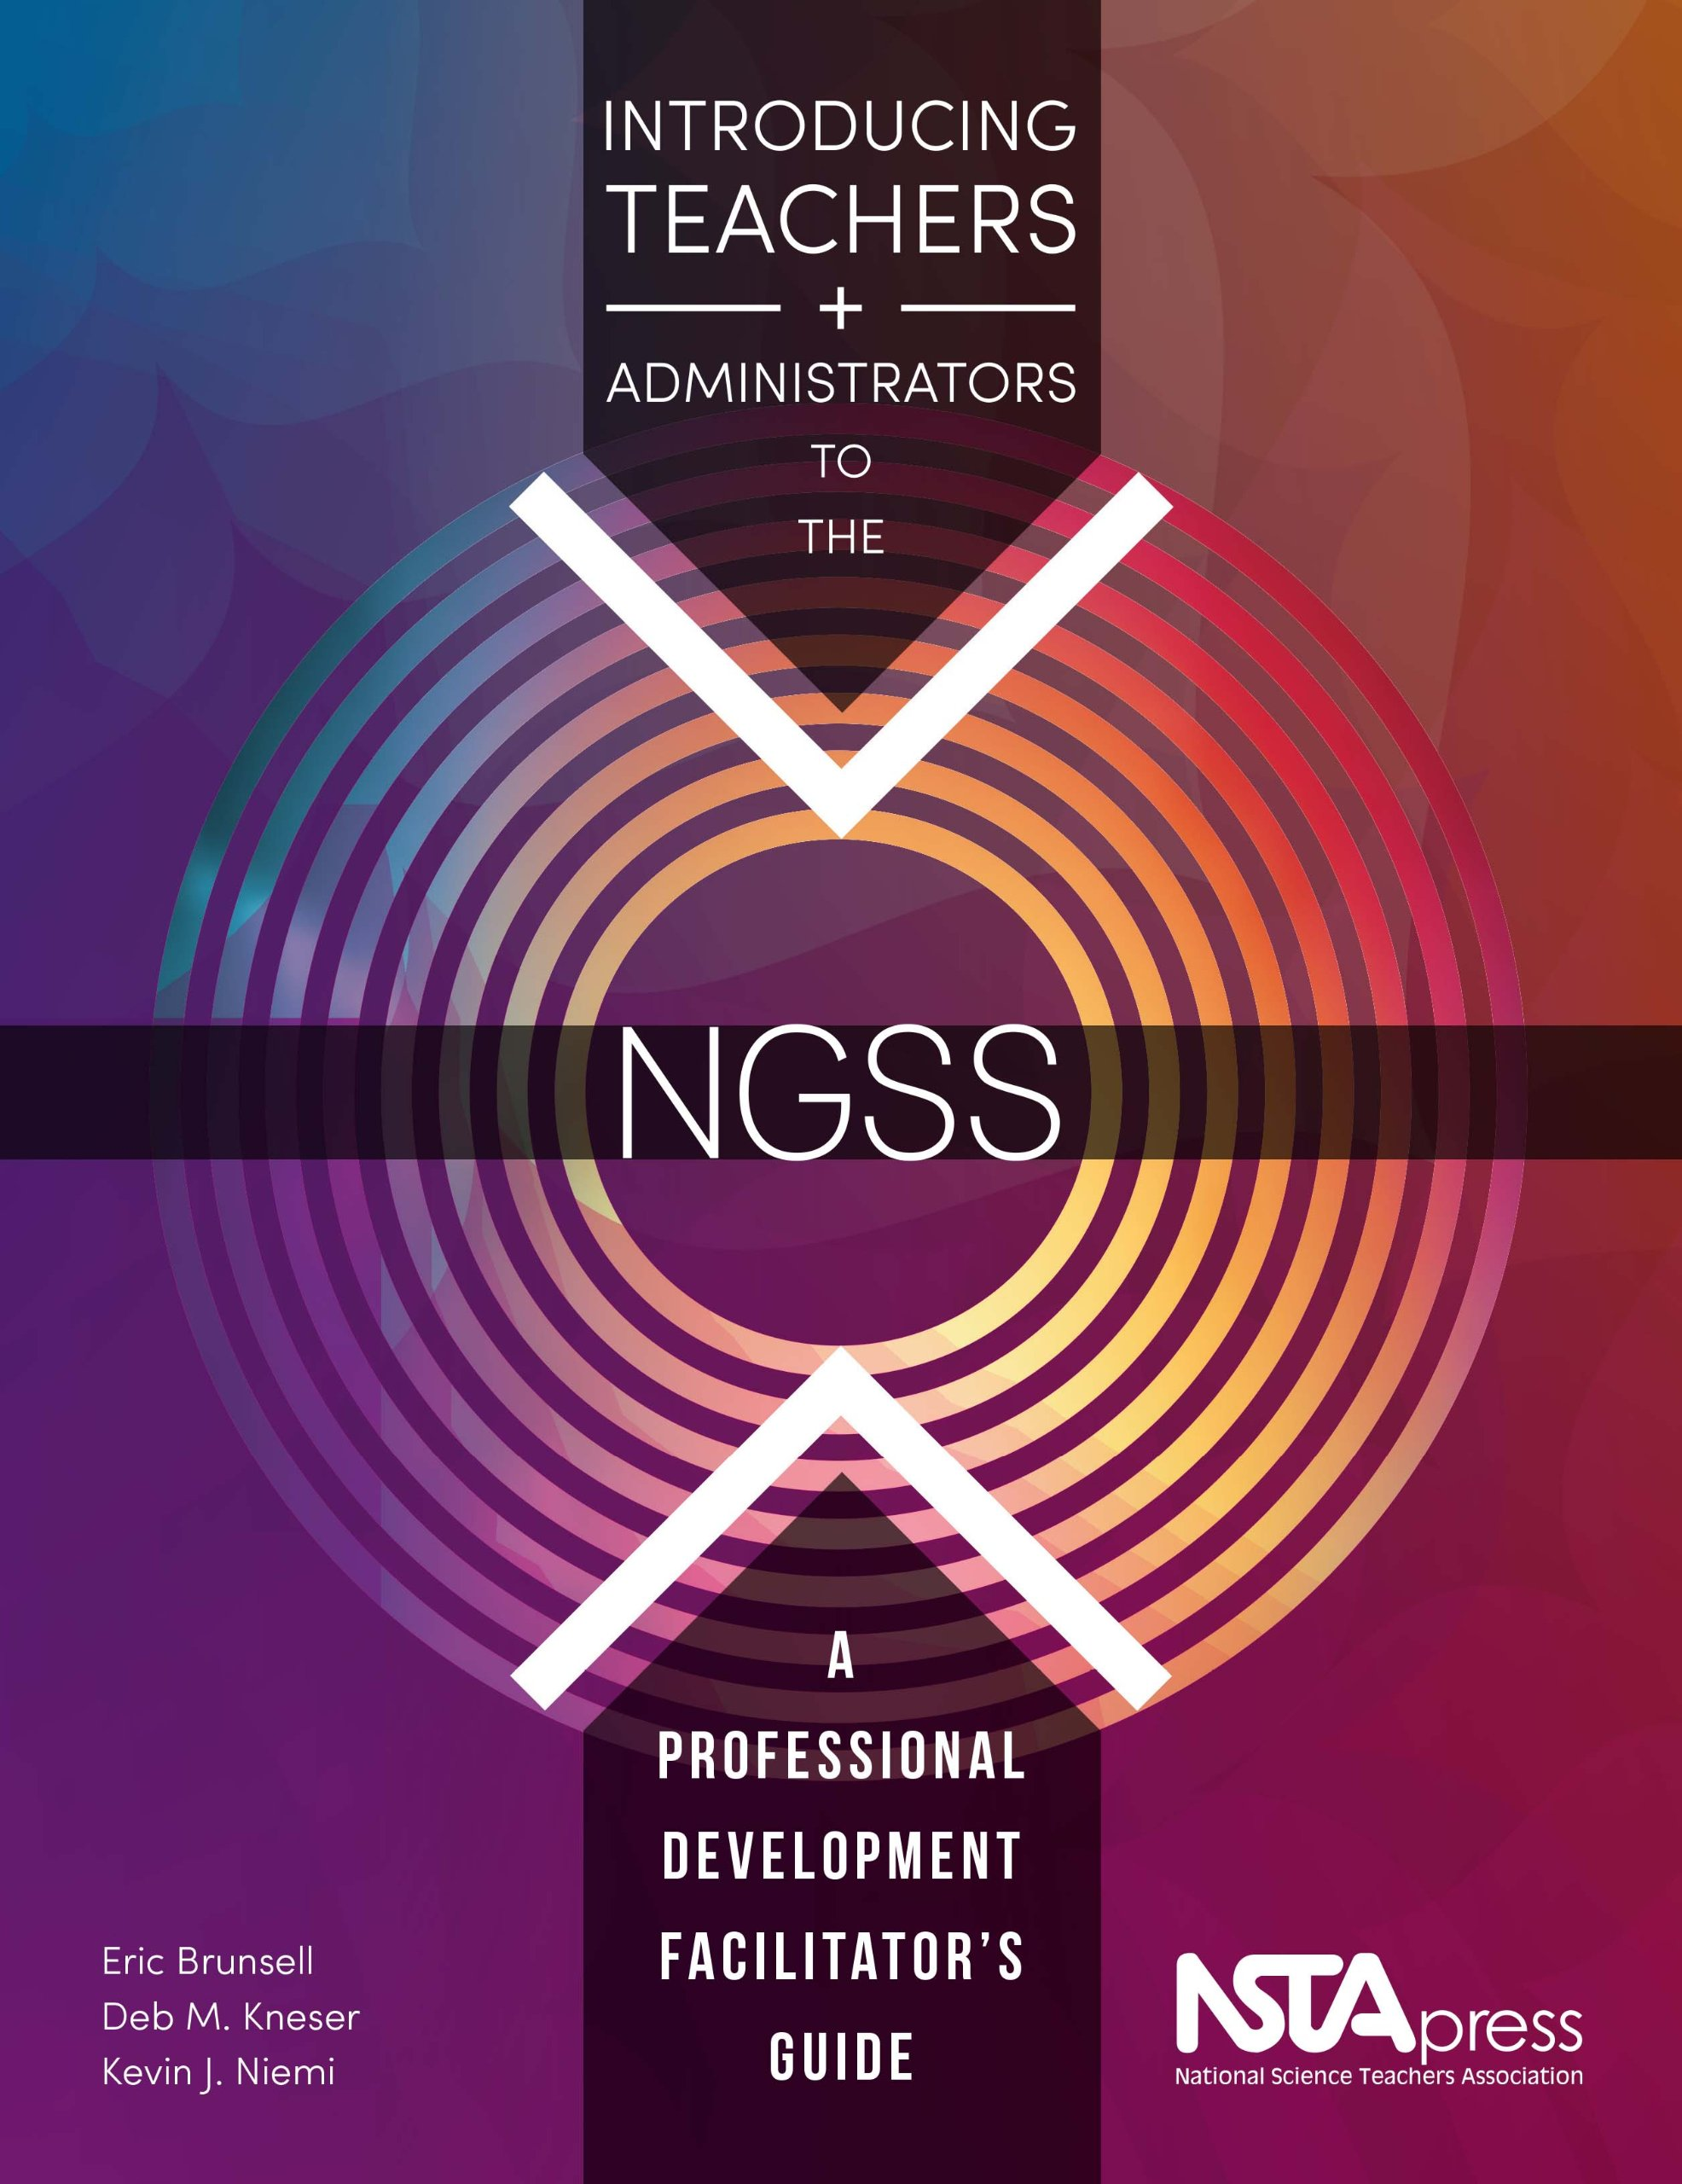 Download Introducing Teachers and Administrators to the NGSS: A Professional Development Facilitator's Guide - PB350X PDF